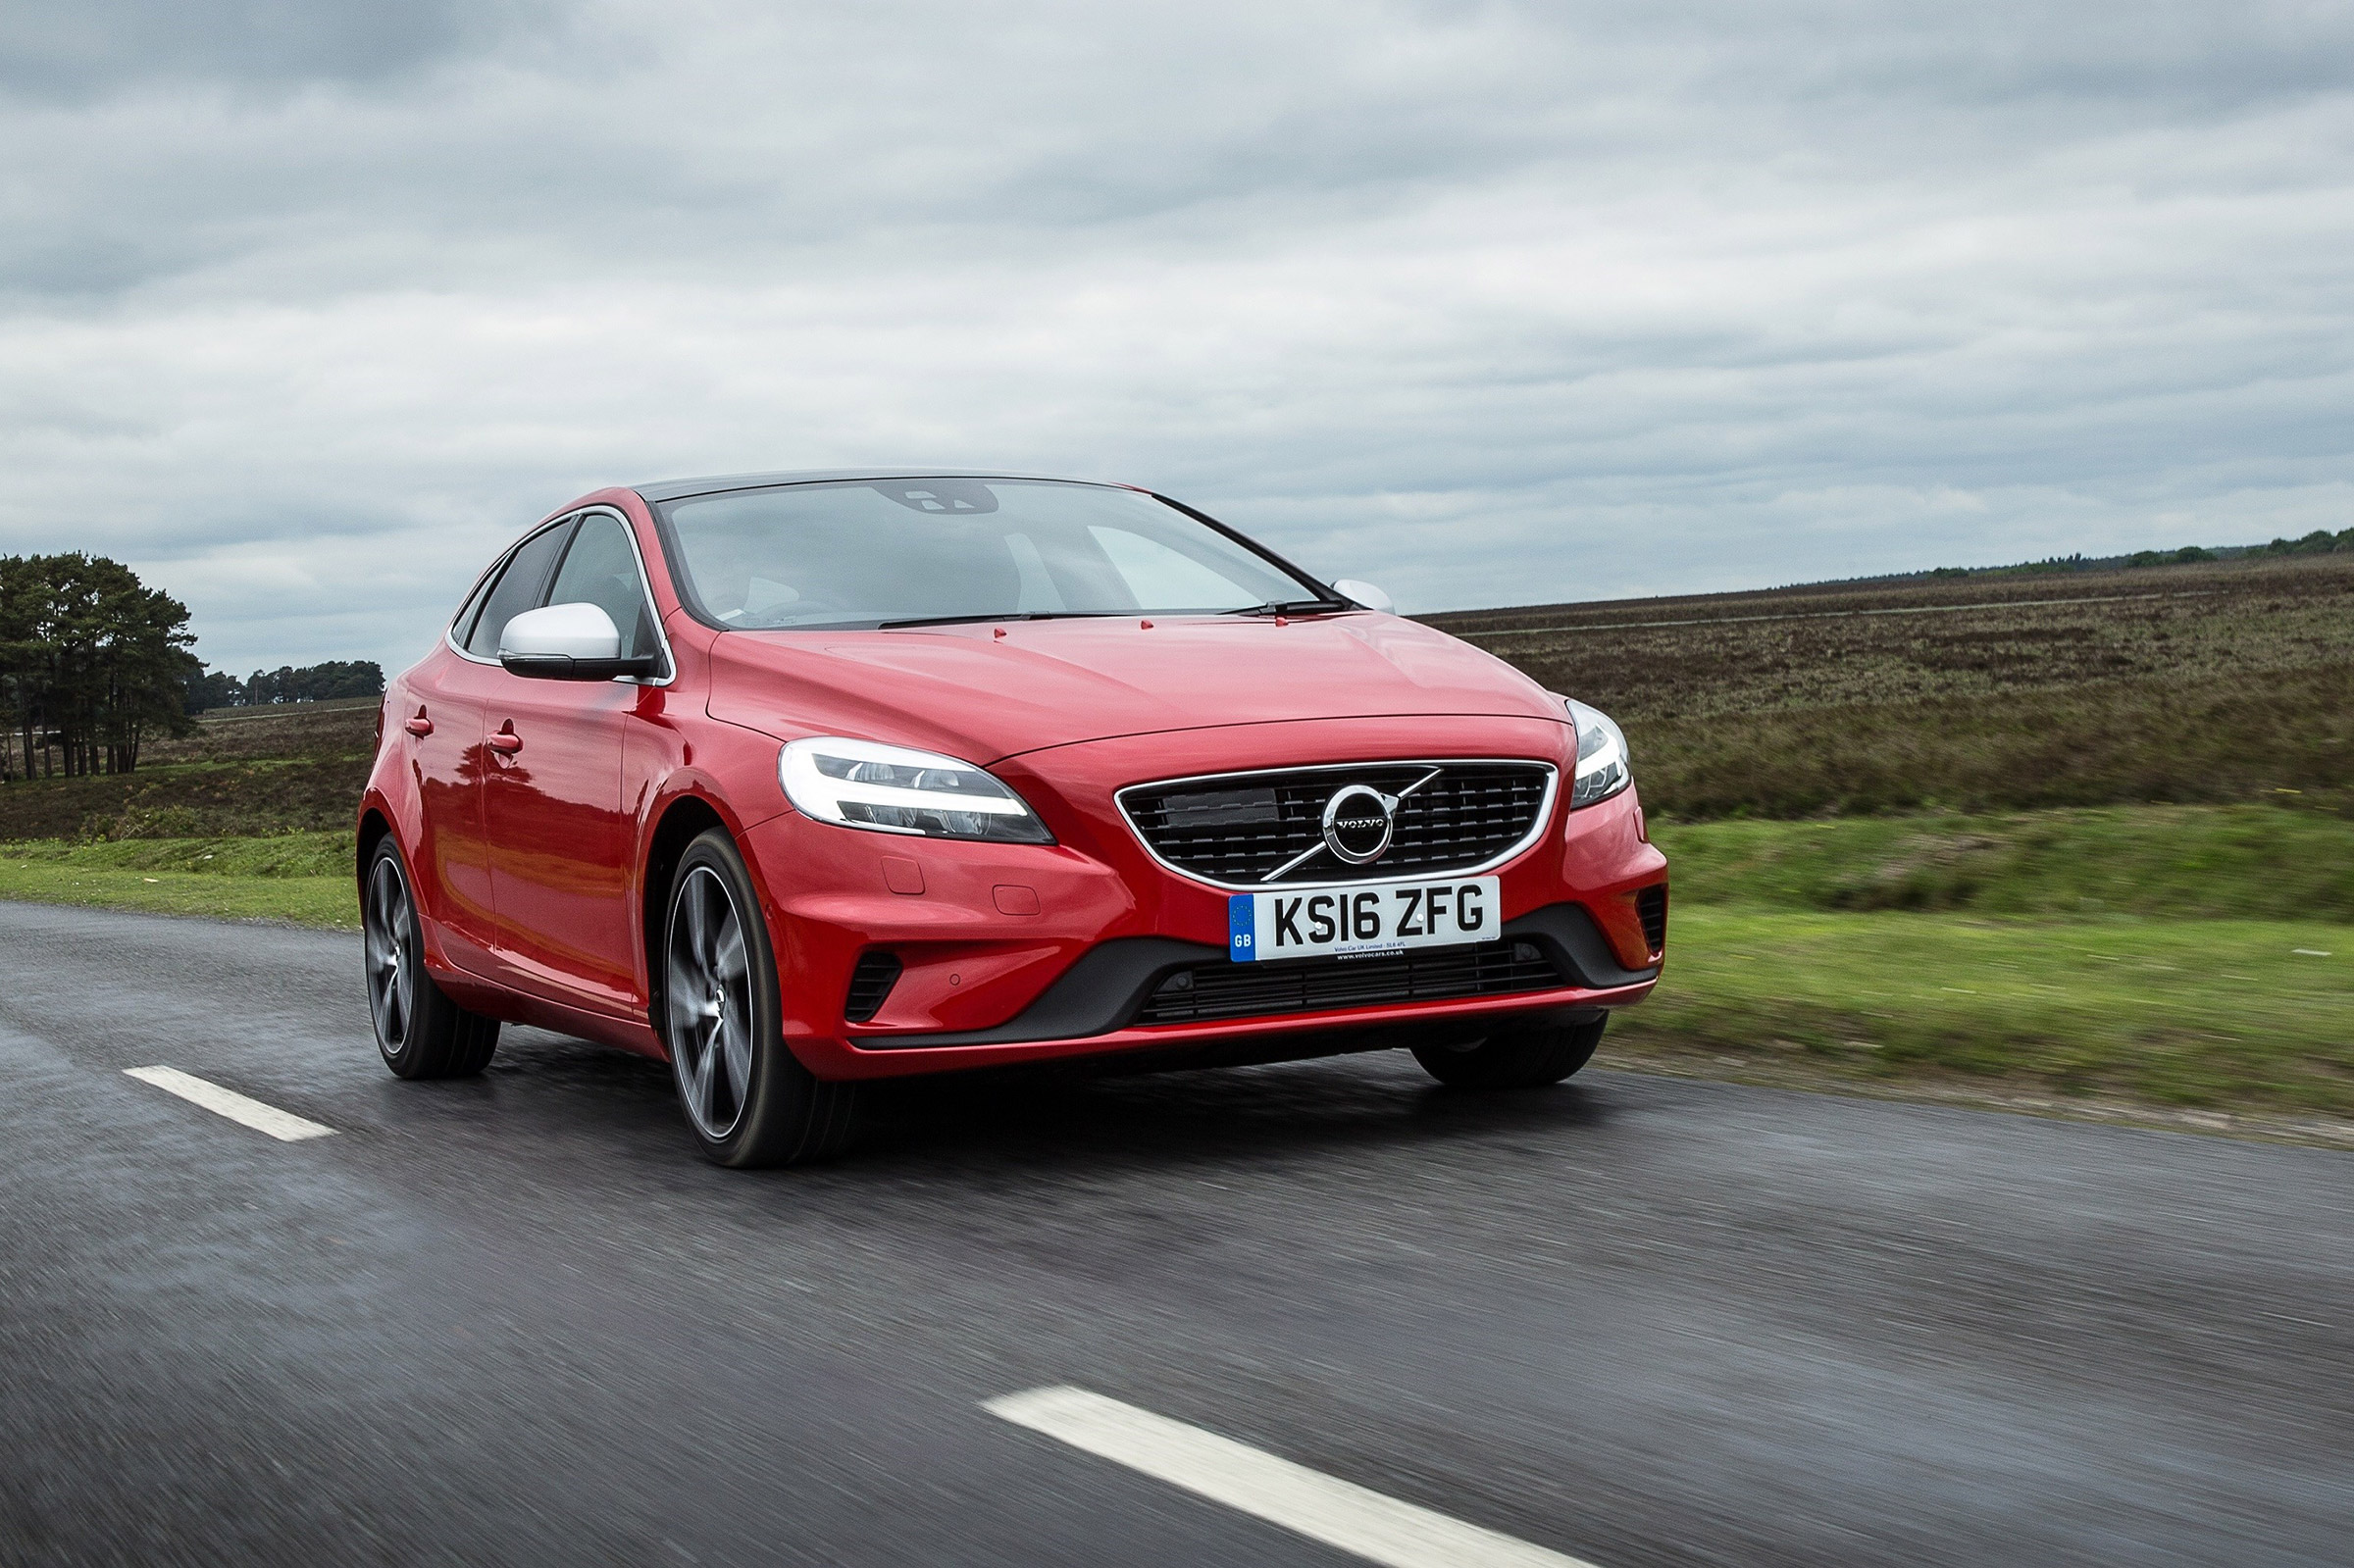 Volvo V40 Review Prices Specs And 060 Time Evo